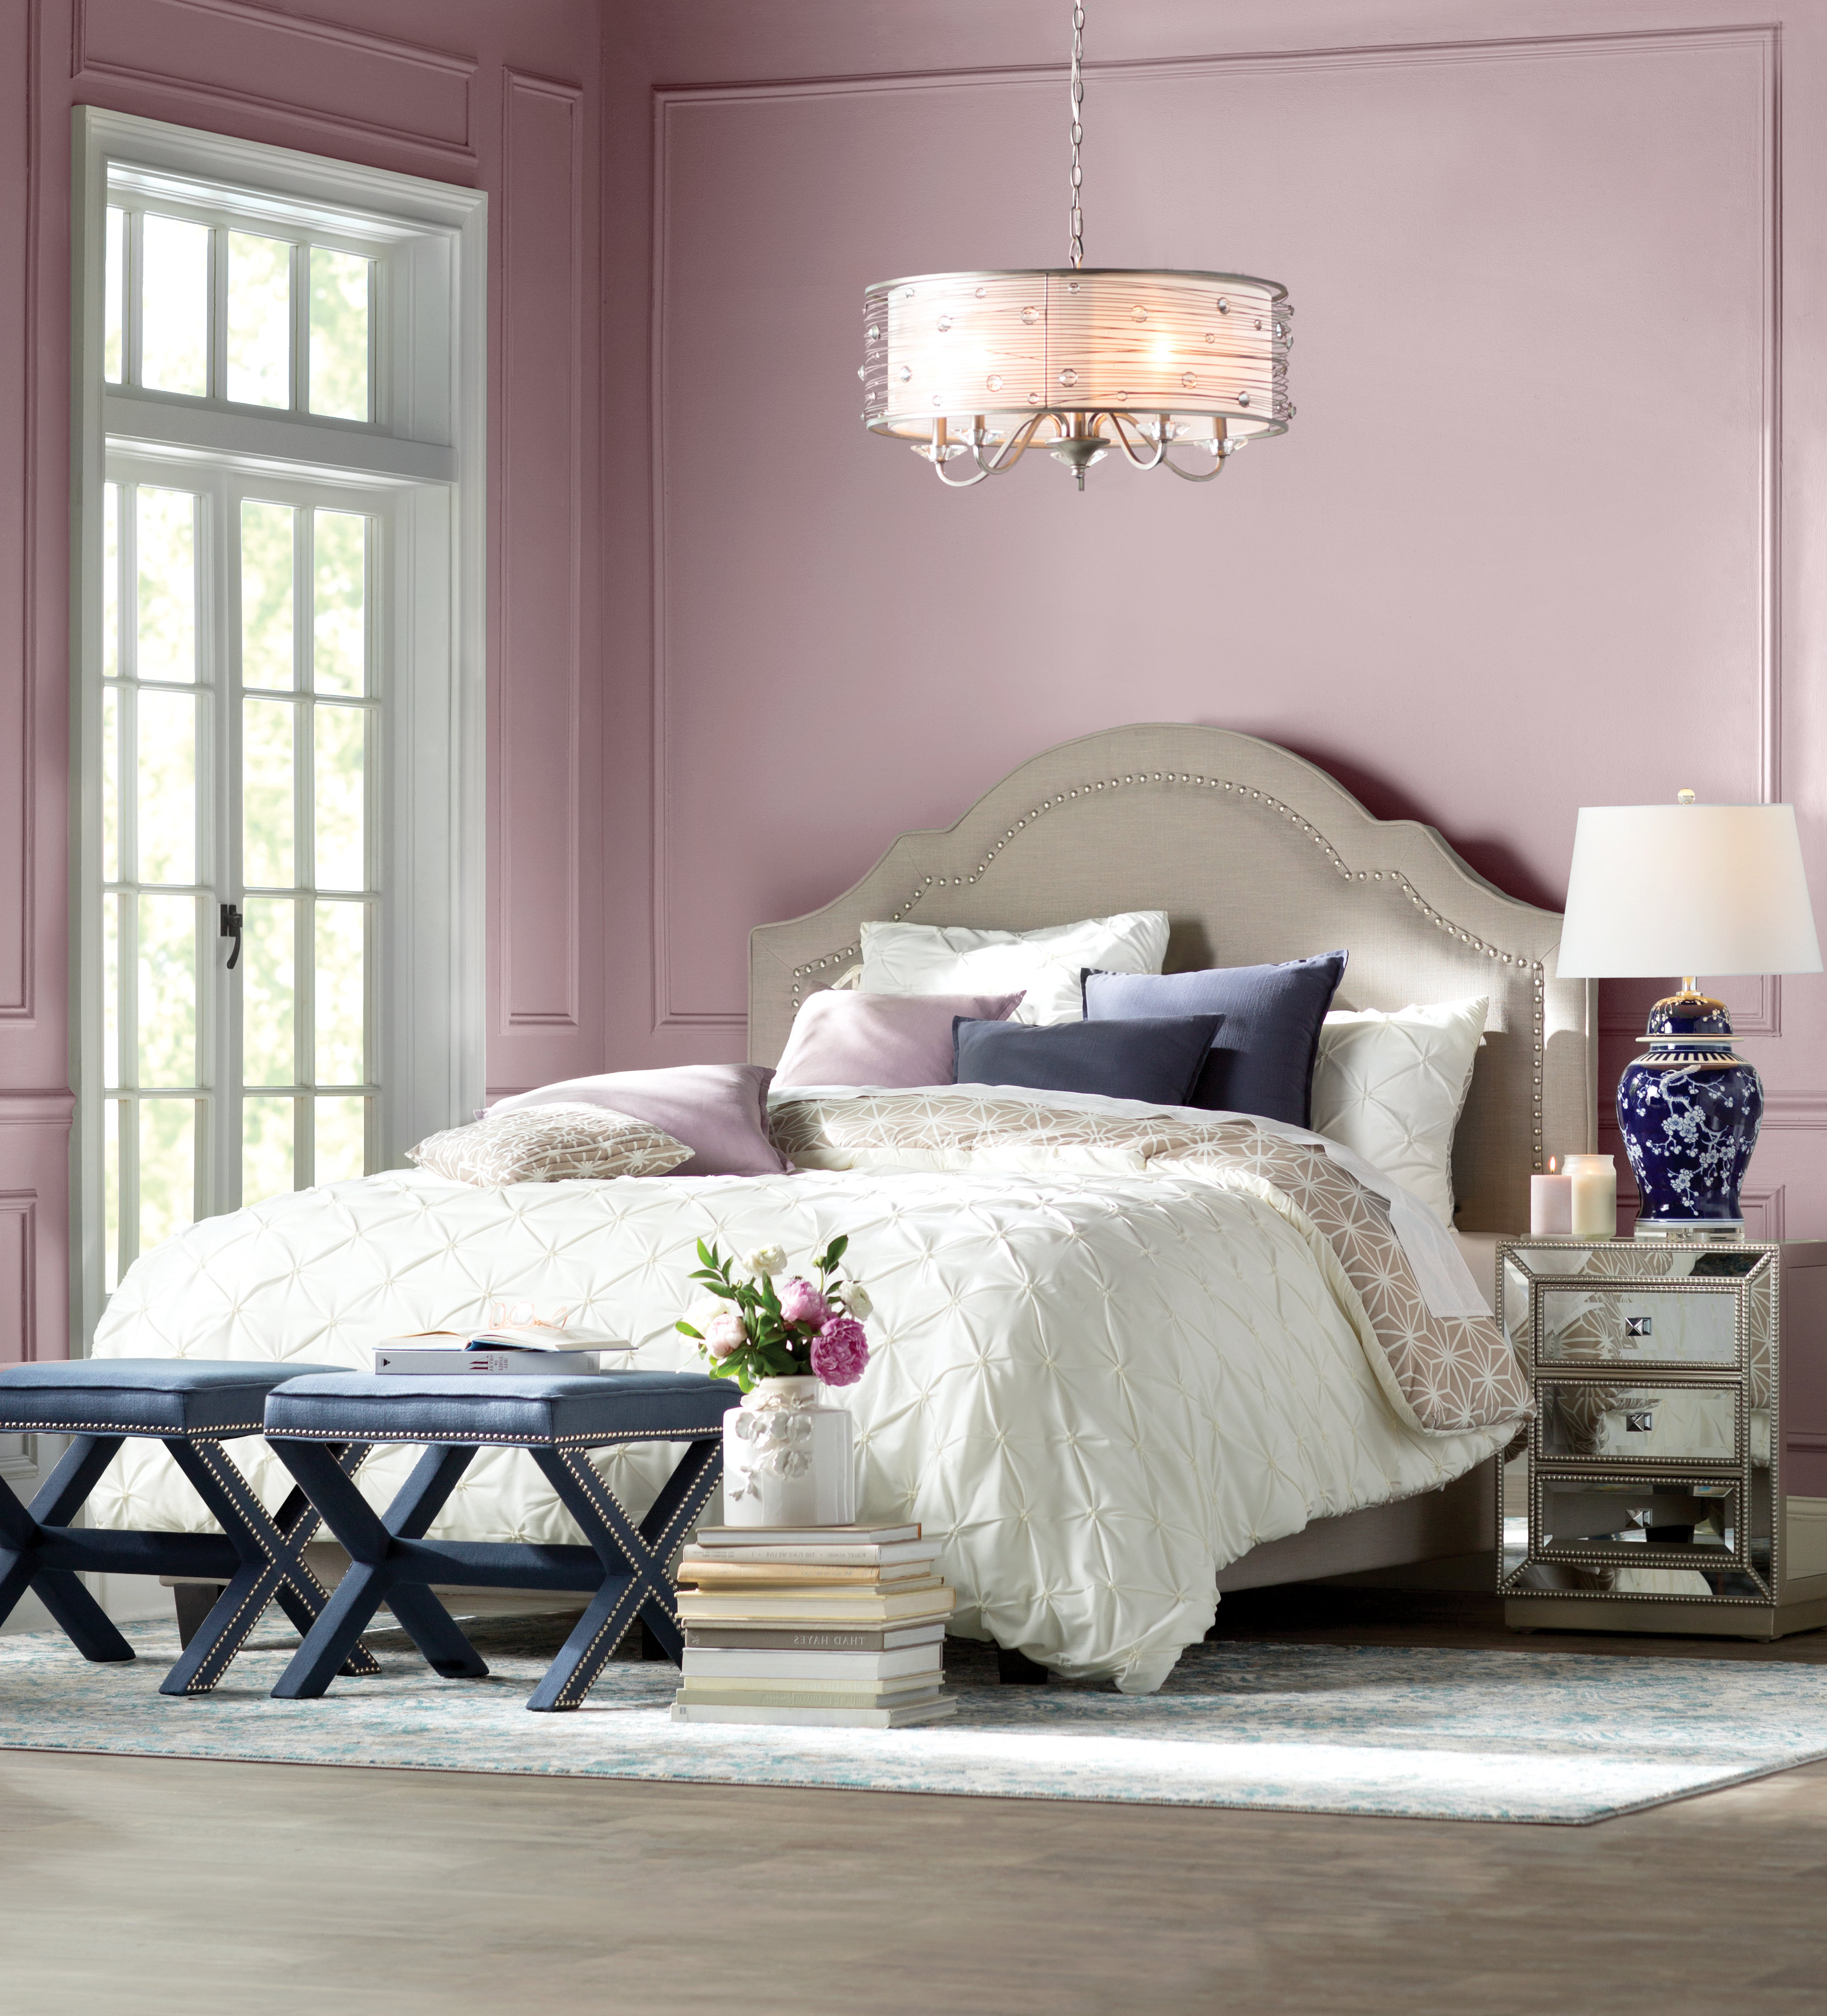 Well Known Willa Arlo Interiors Hermione 5 Light Drum Chandelier For Hermione 5 Light Drum Chandeliers (View 3 of 25)